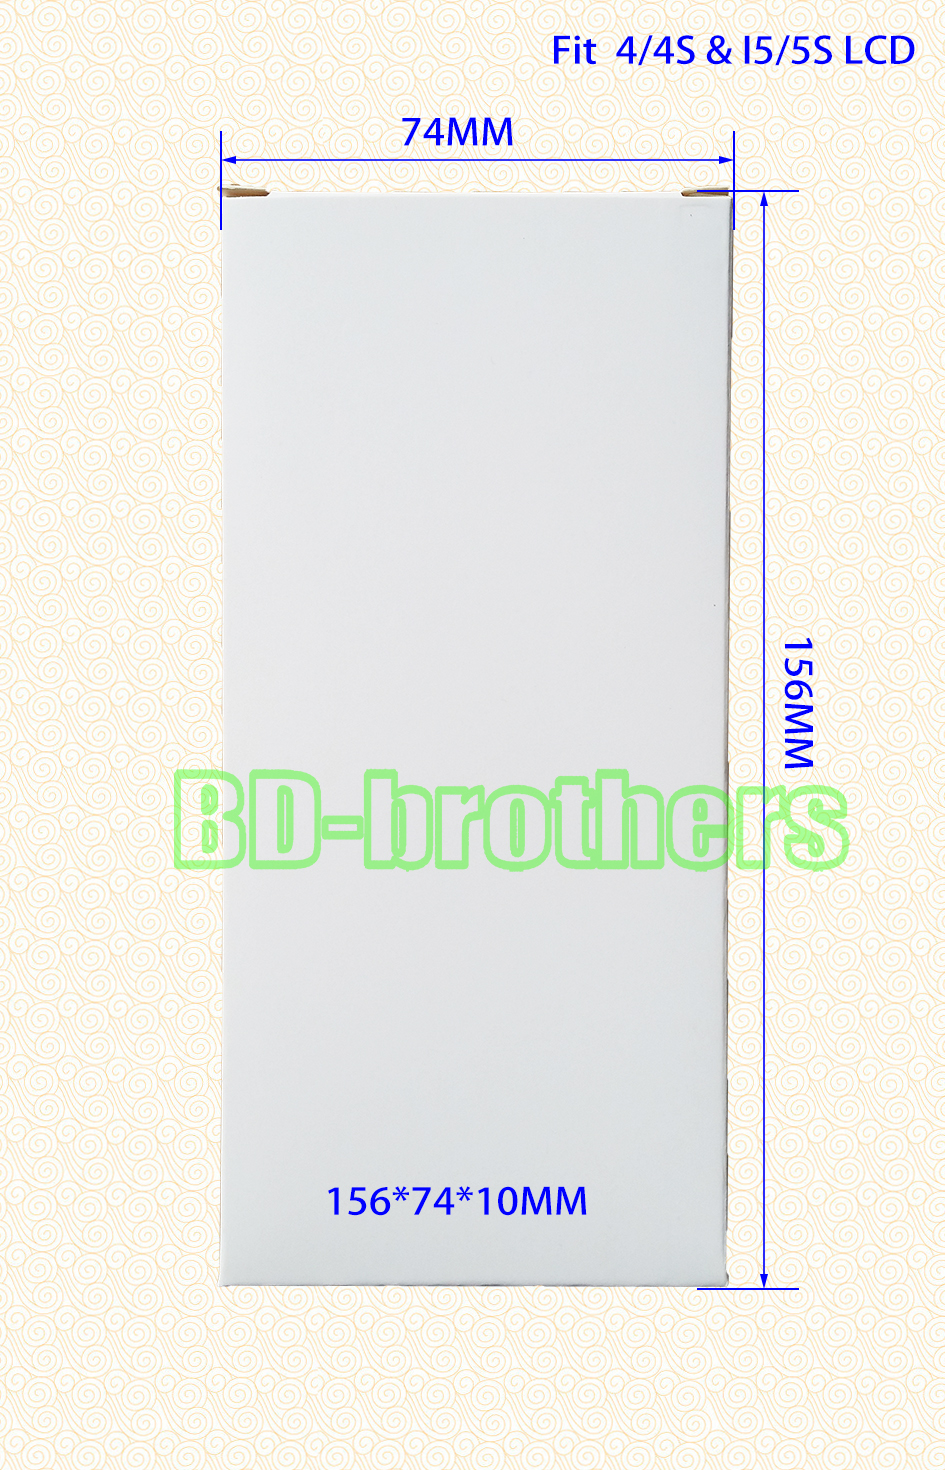 156 x 74 x 10mm Wihte Paper Box for I4/4S &amp; I5/5S LCD Screen Packing Package Wholesale 5000pcs/lot<br><br>Aliexpress